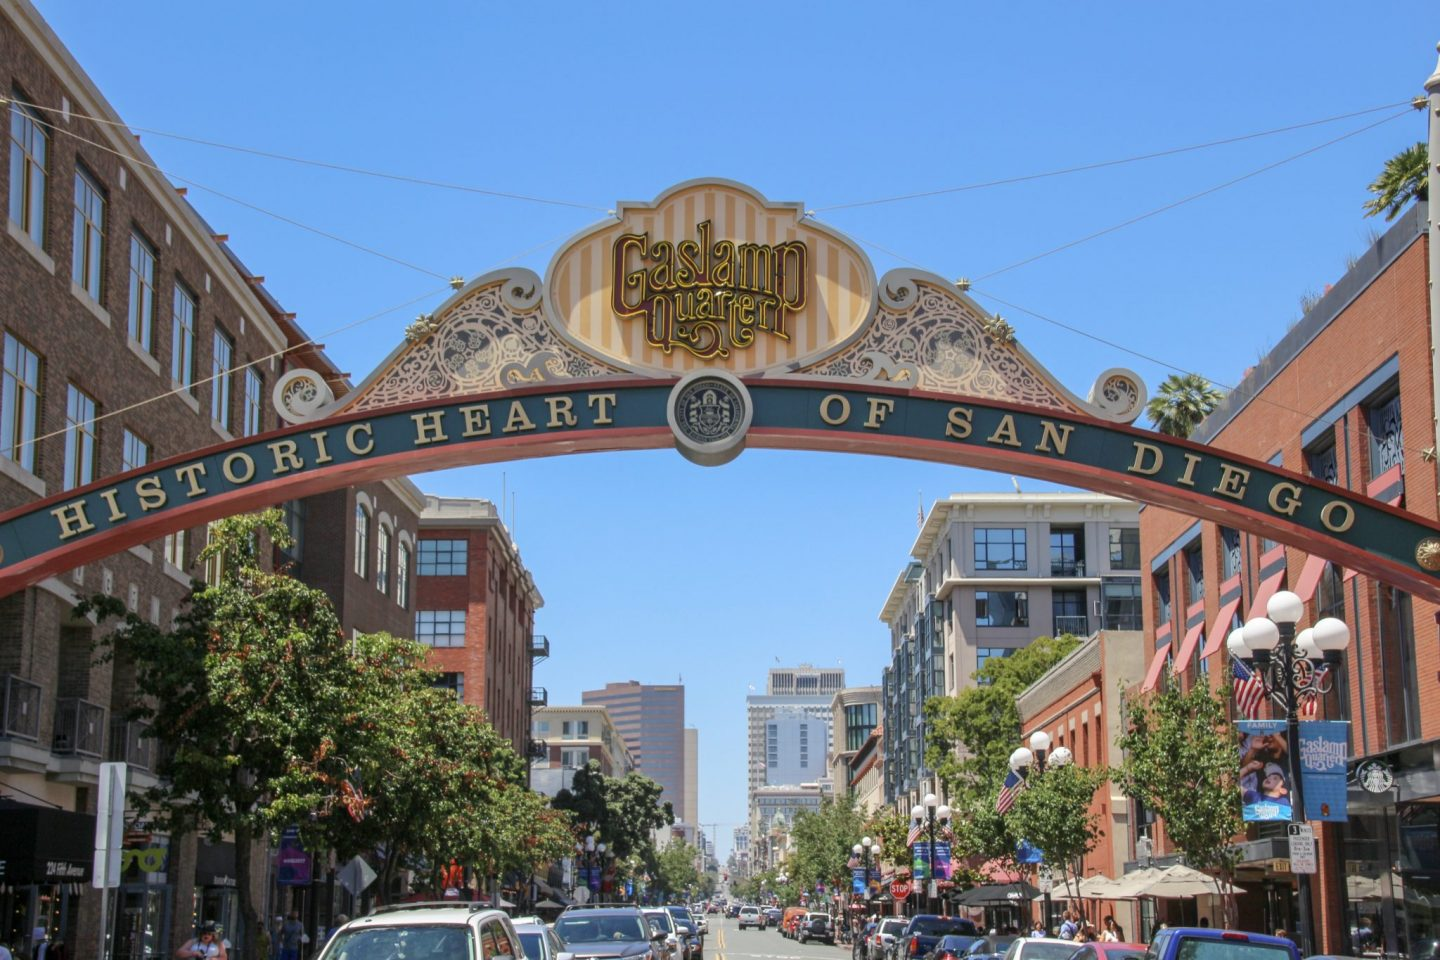 Gaslamp Quarter Sign, San Diego